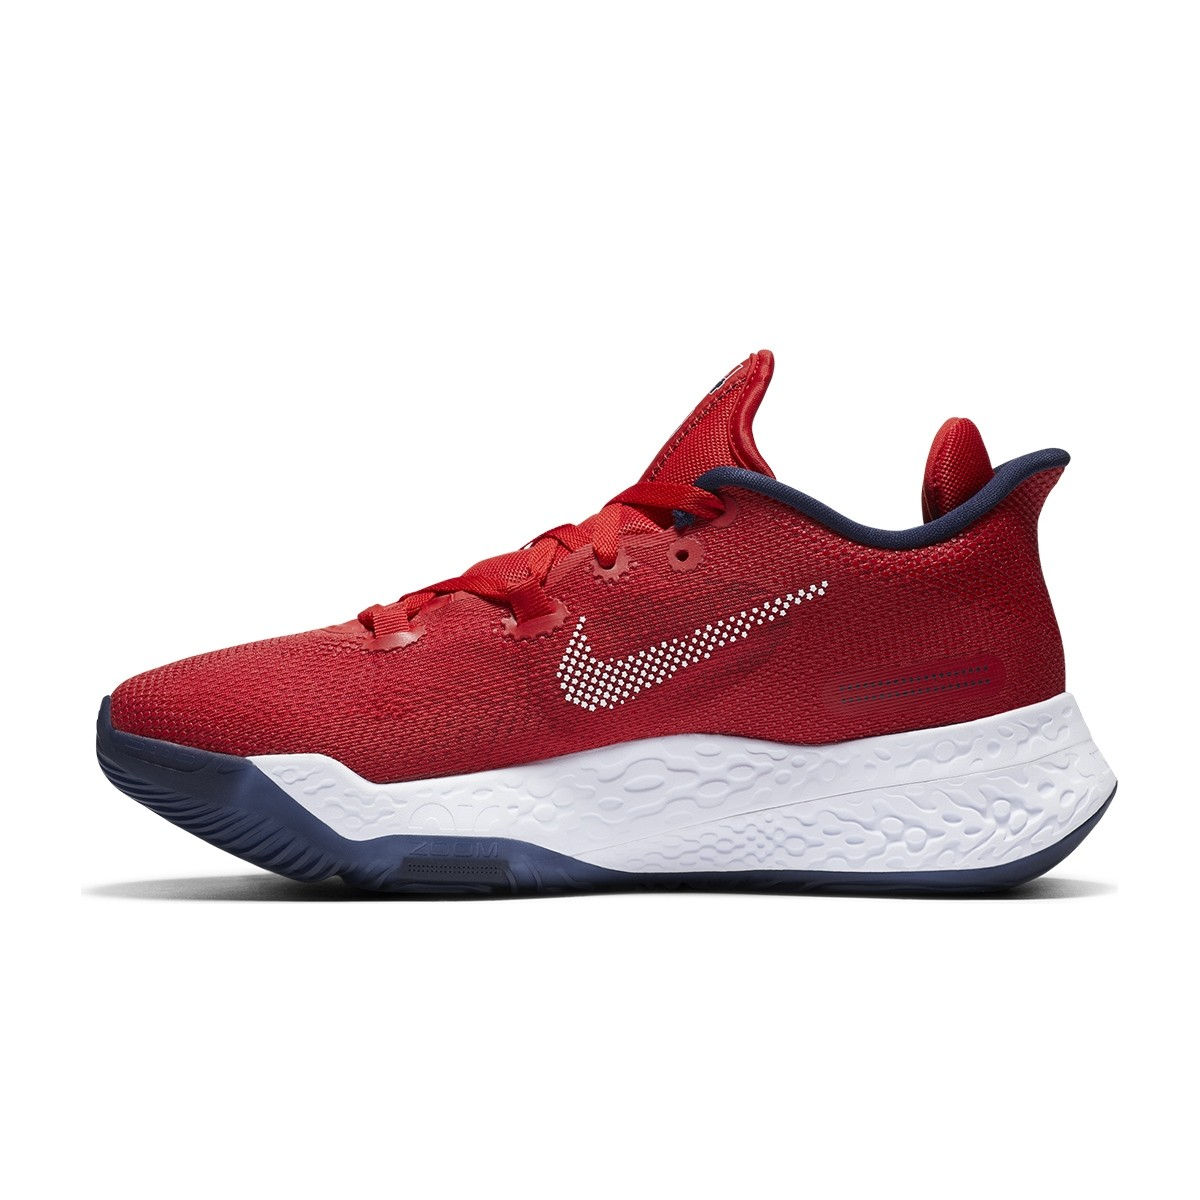 Nike Air Zoom BB NXT 'USA'-CK5707-600